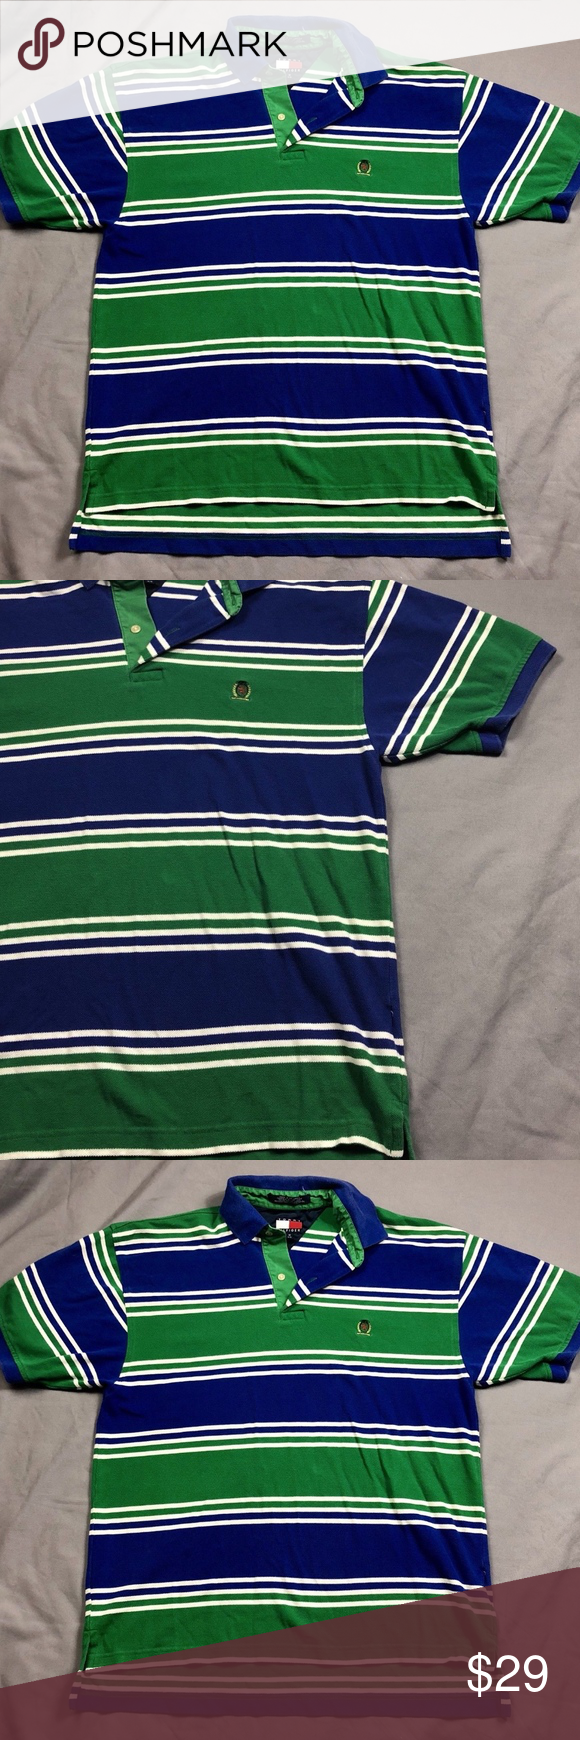 875c07be Vintage Tommy Hilfiger Mens Striped Polo Shirt Med Vintage Mens Striped  Tommy Hilfiger Polo Shirt Colors: Green / Blue / White Size: Medium pit to  pit: 22